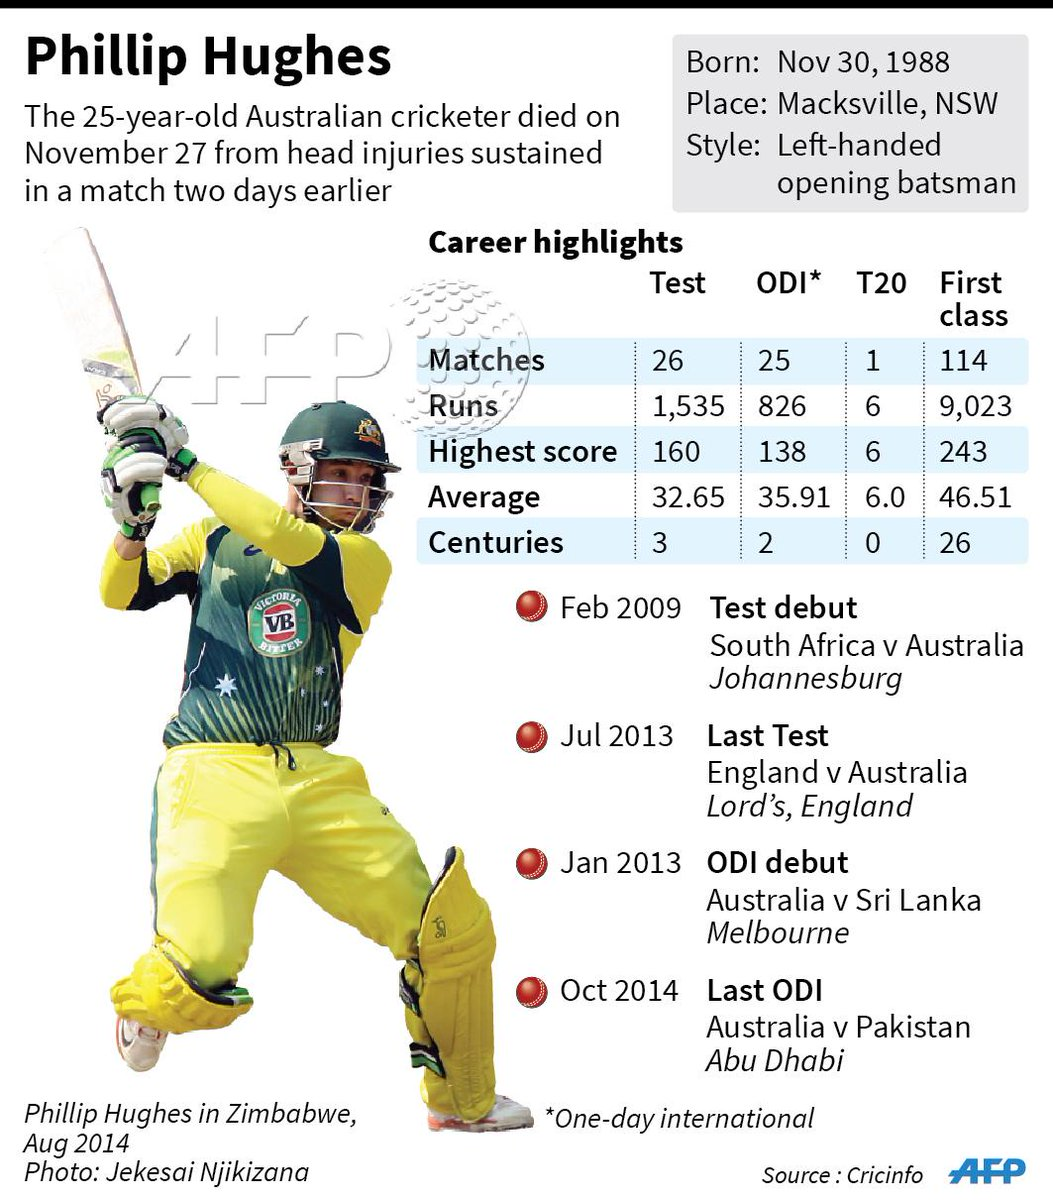 #INFOGRAPHIC: Sporting profile of Australian cricketer Phillip Hughes, whose funeral takes place today http://t.co/fyPvkGE6tK